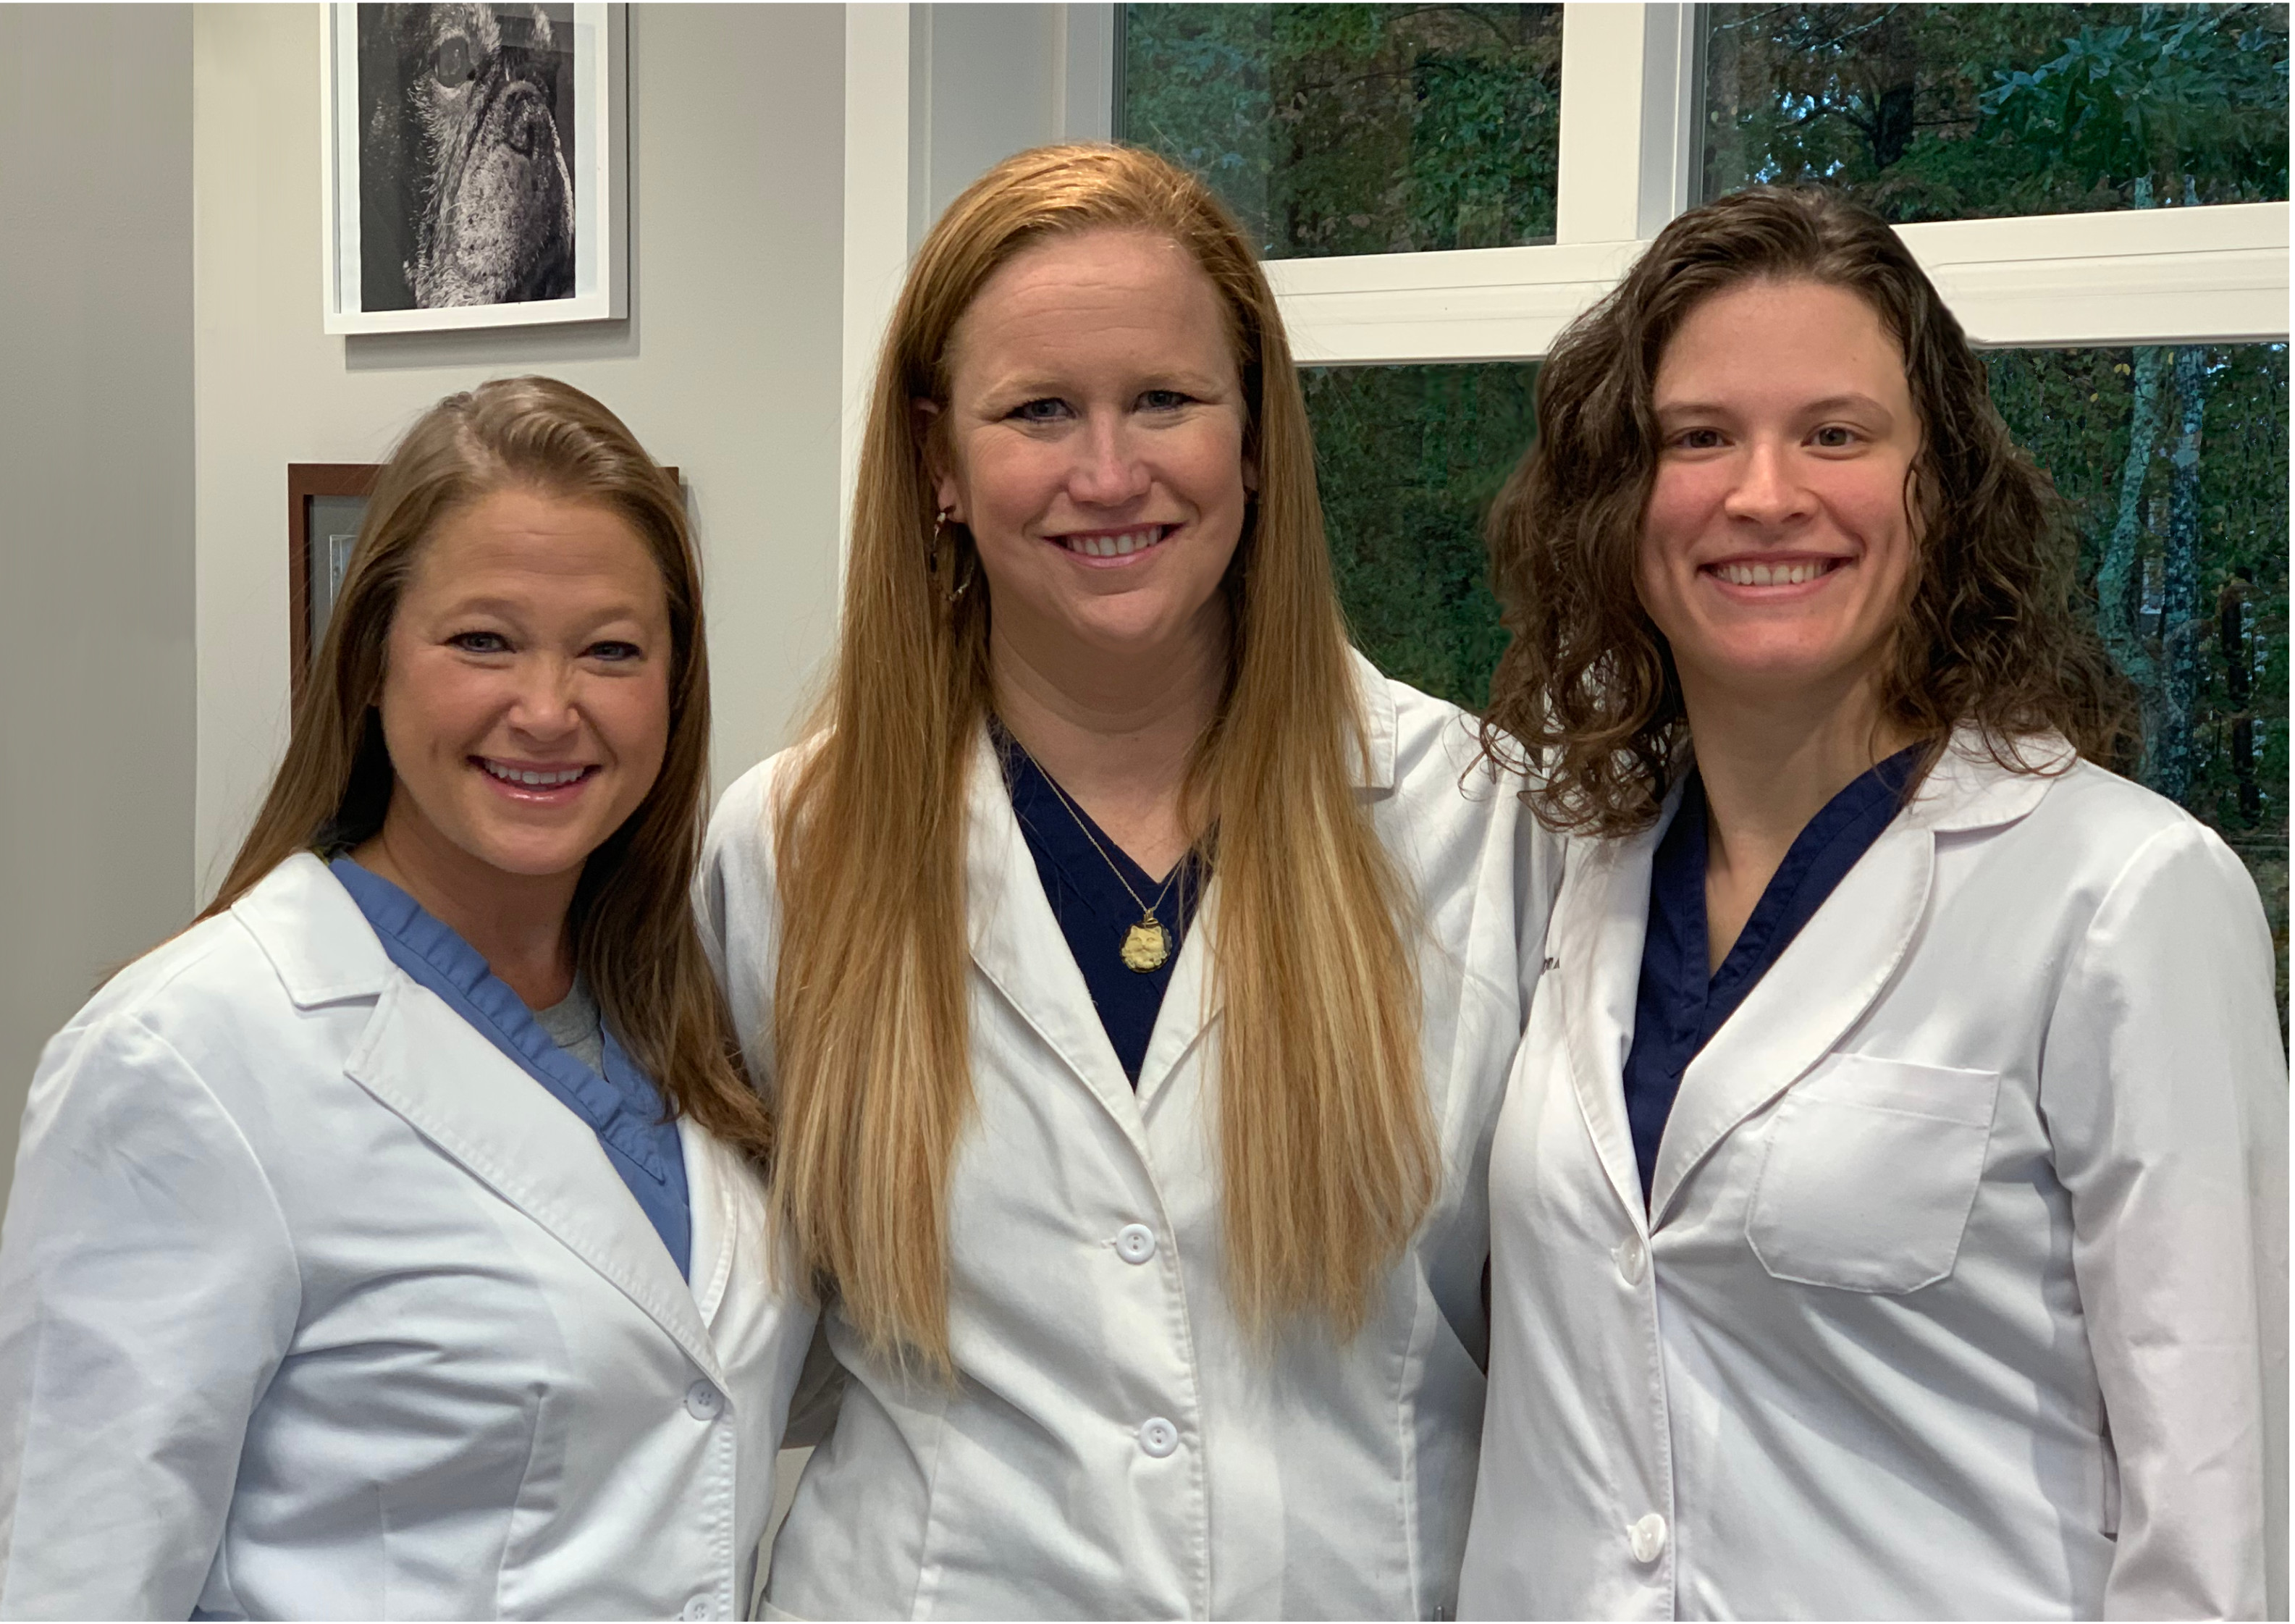 Dr. Melissa Roberts, Dr. Carrie Friedewald, and Dr. Taryn McDonald